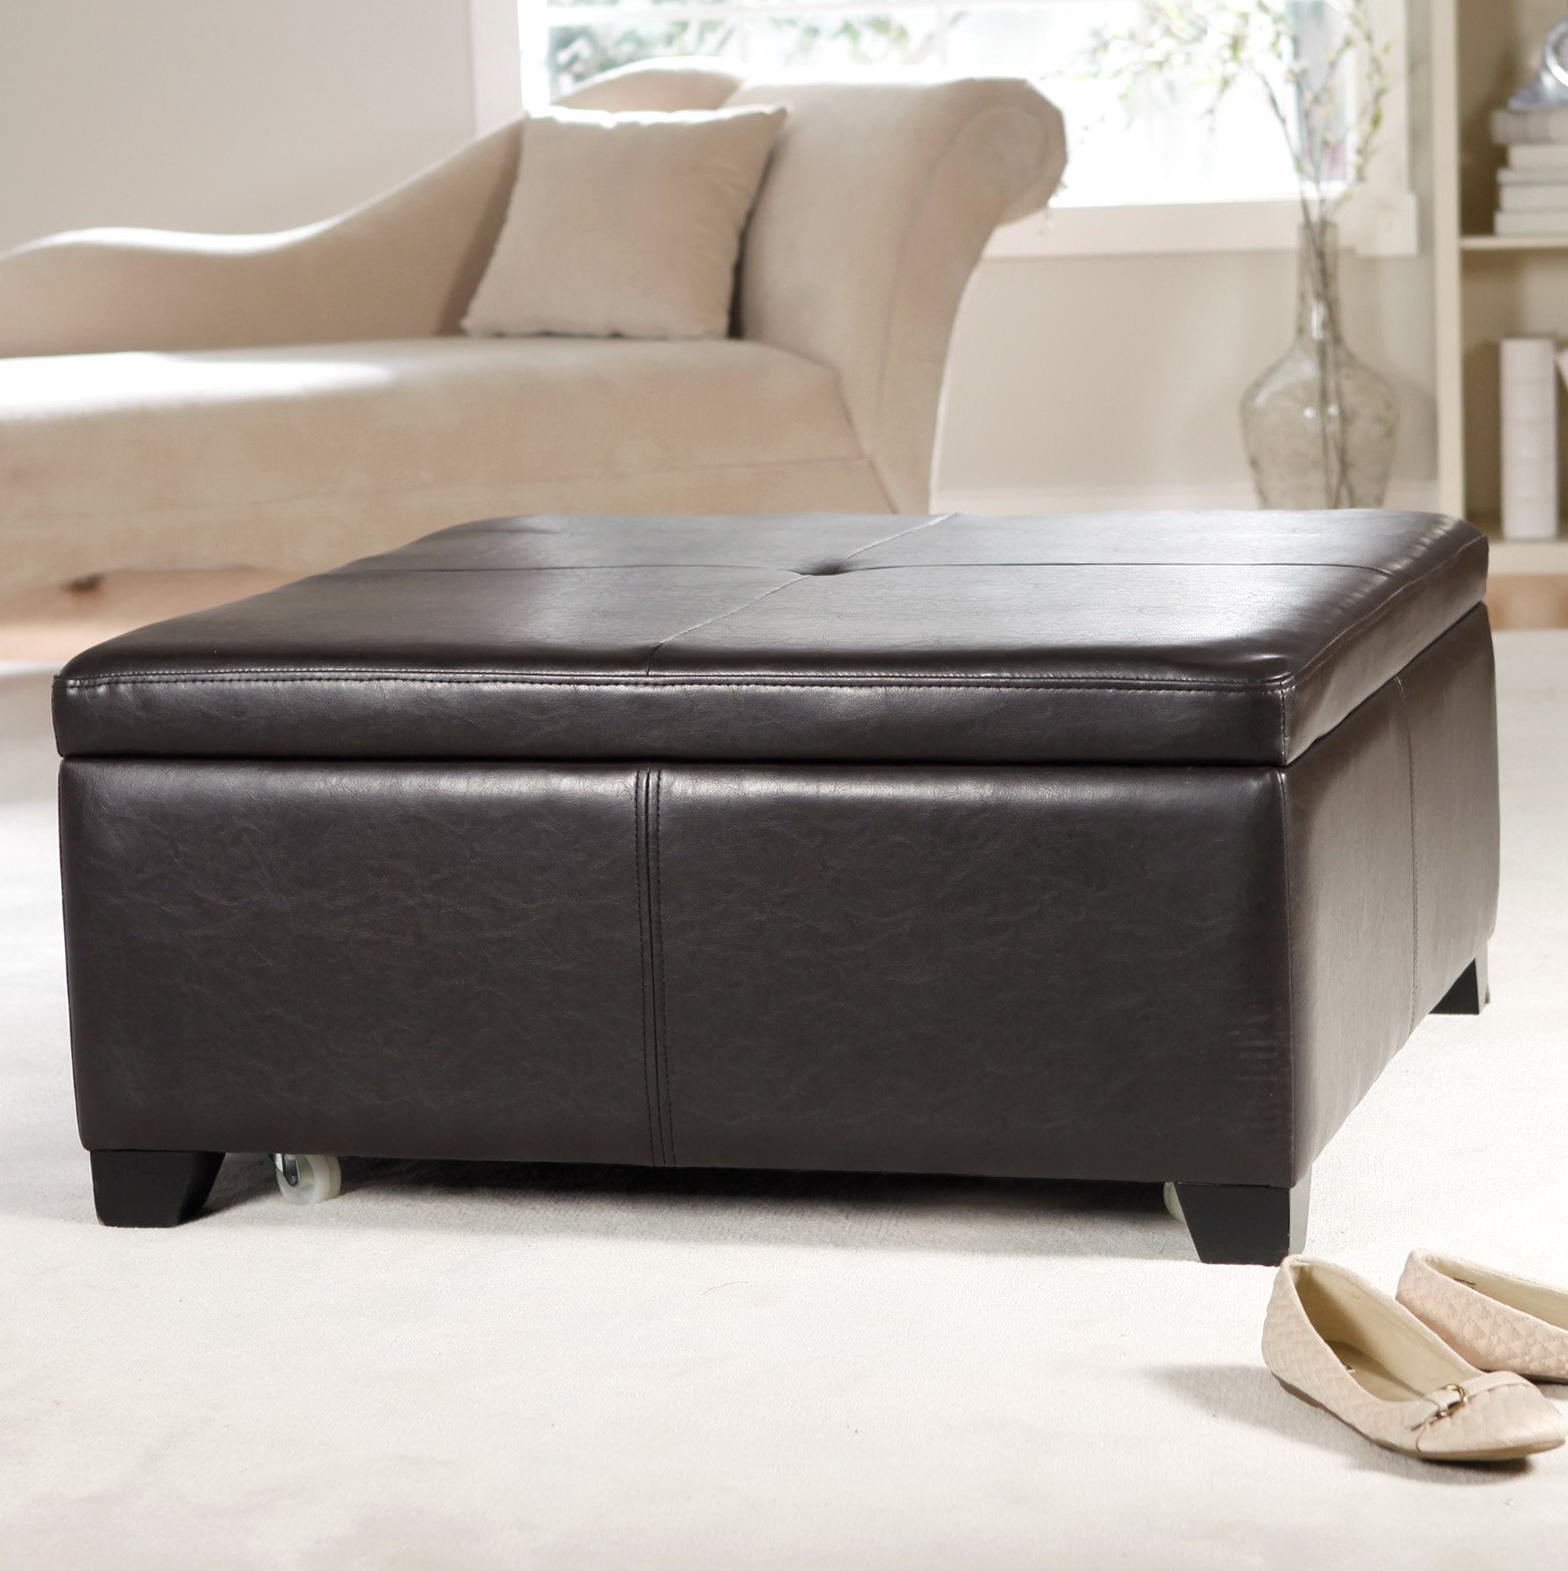 Storage Coffee Table Target: Storage Ottoman Coffee Table Target